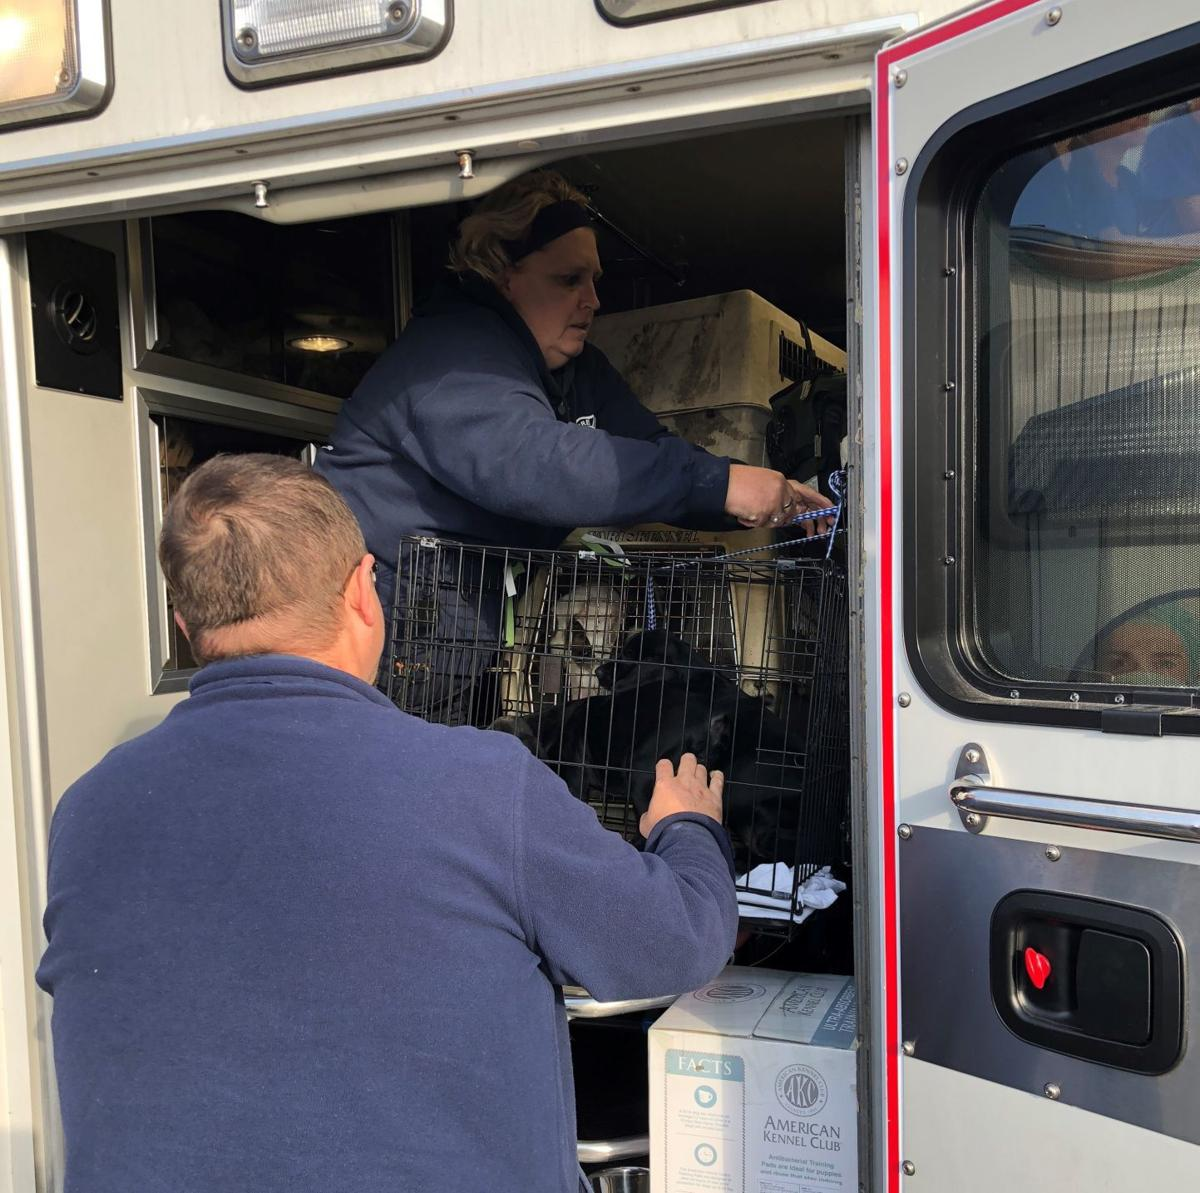 Rescue of pets displaced by Florida hurricane latest charitable effort from ambulance operator inHealth